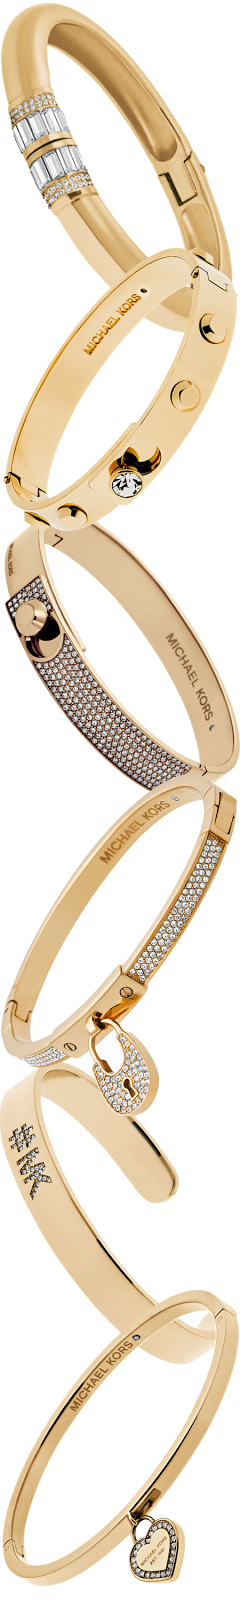 Michael Kors Assorted Golden Bangles